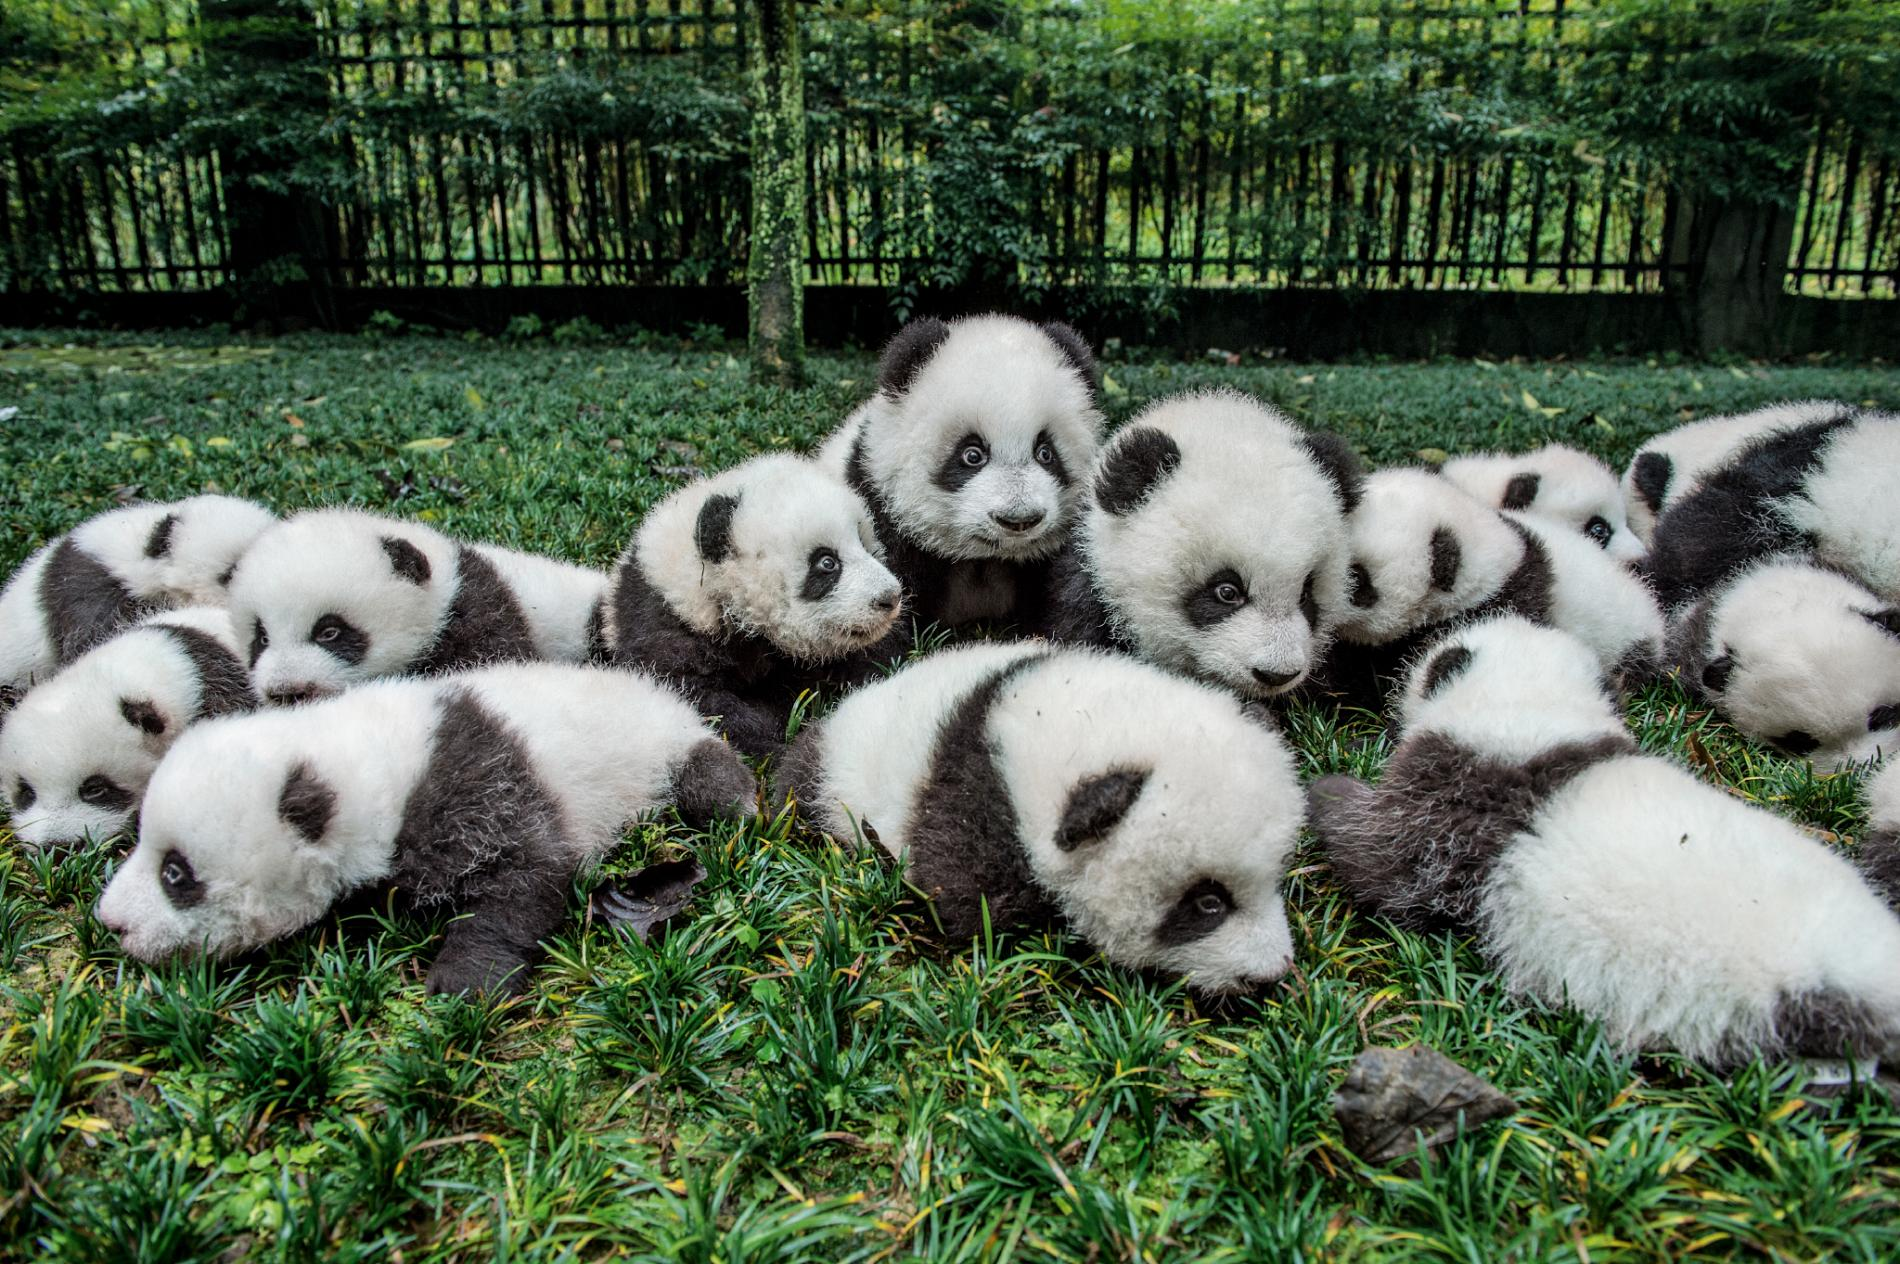 Uncovering panda's backstory on 150th anniversary of scientific discovery